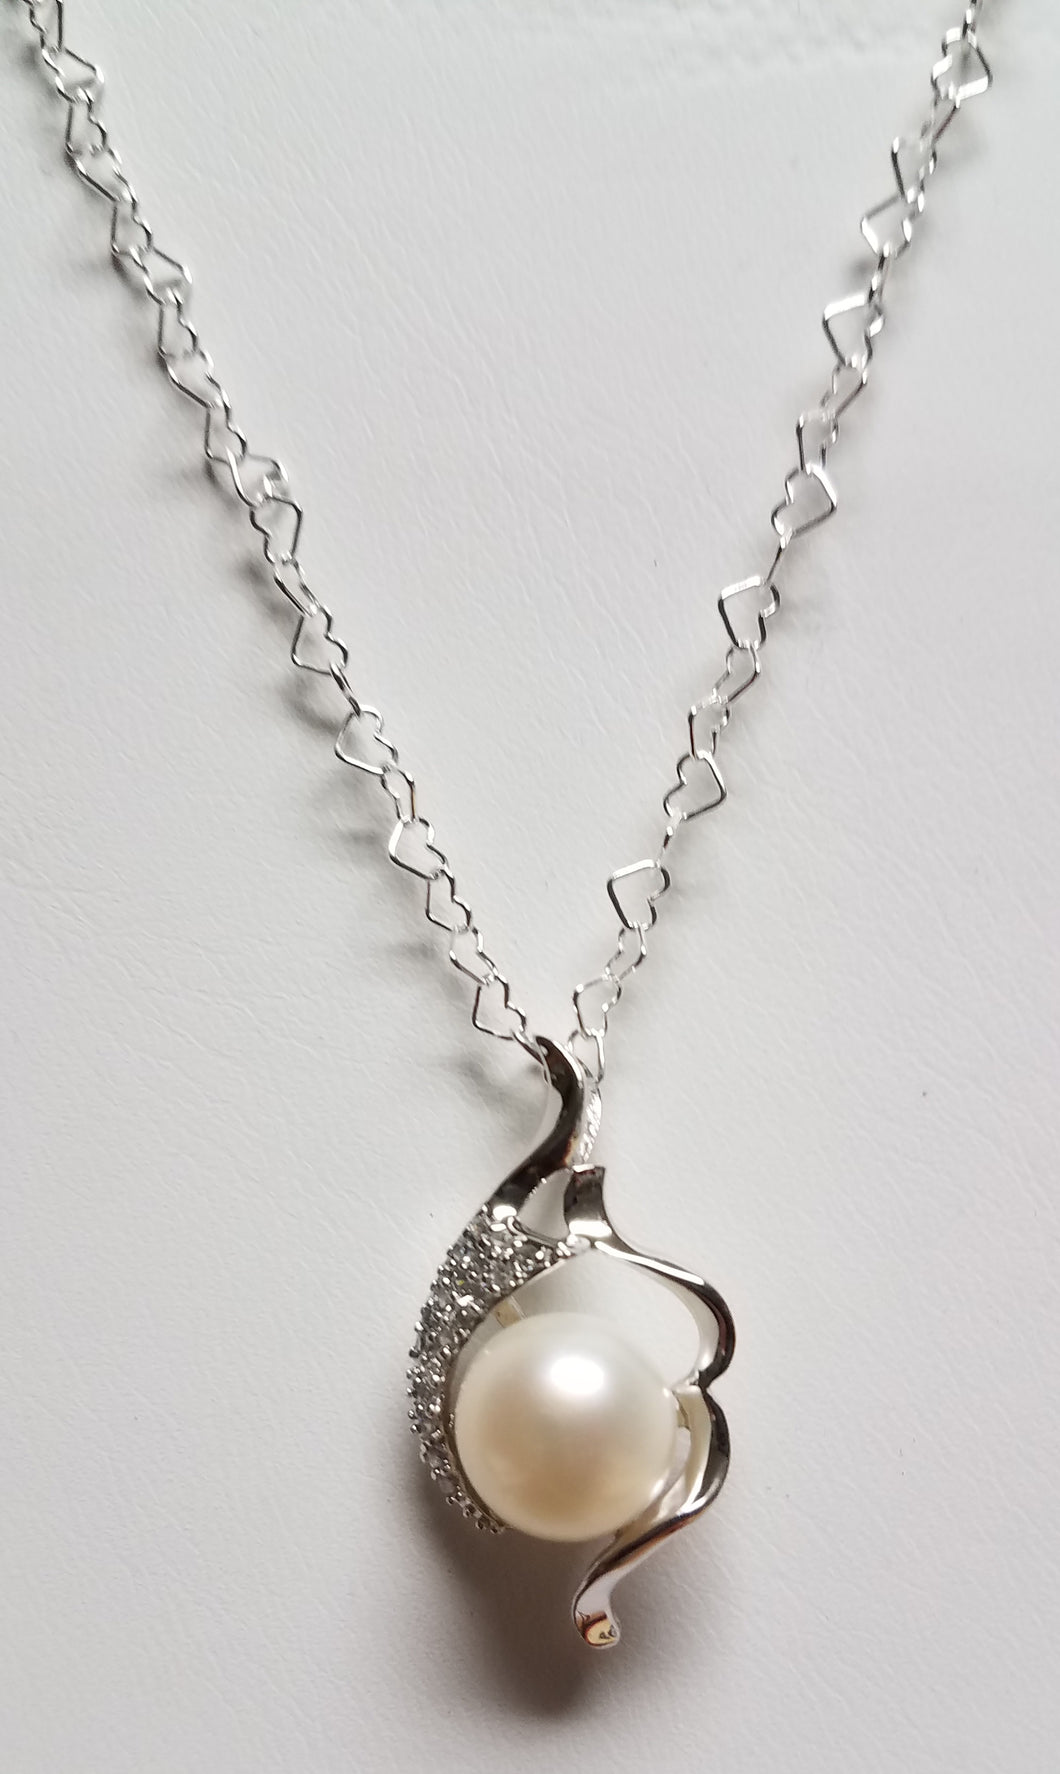 Heart-Chain-freshwater-Pearl-Drop-Necklace-Cubic-Zirconia-Sterling-Silver